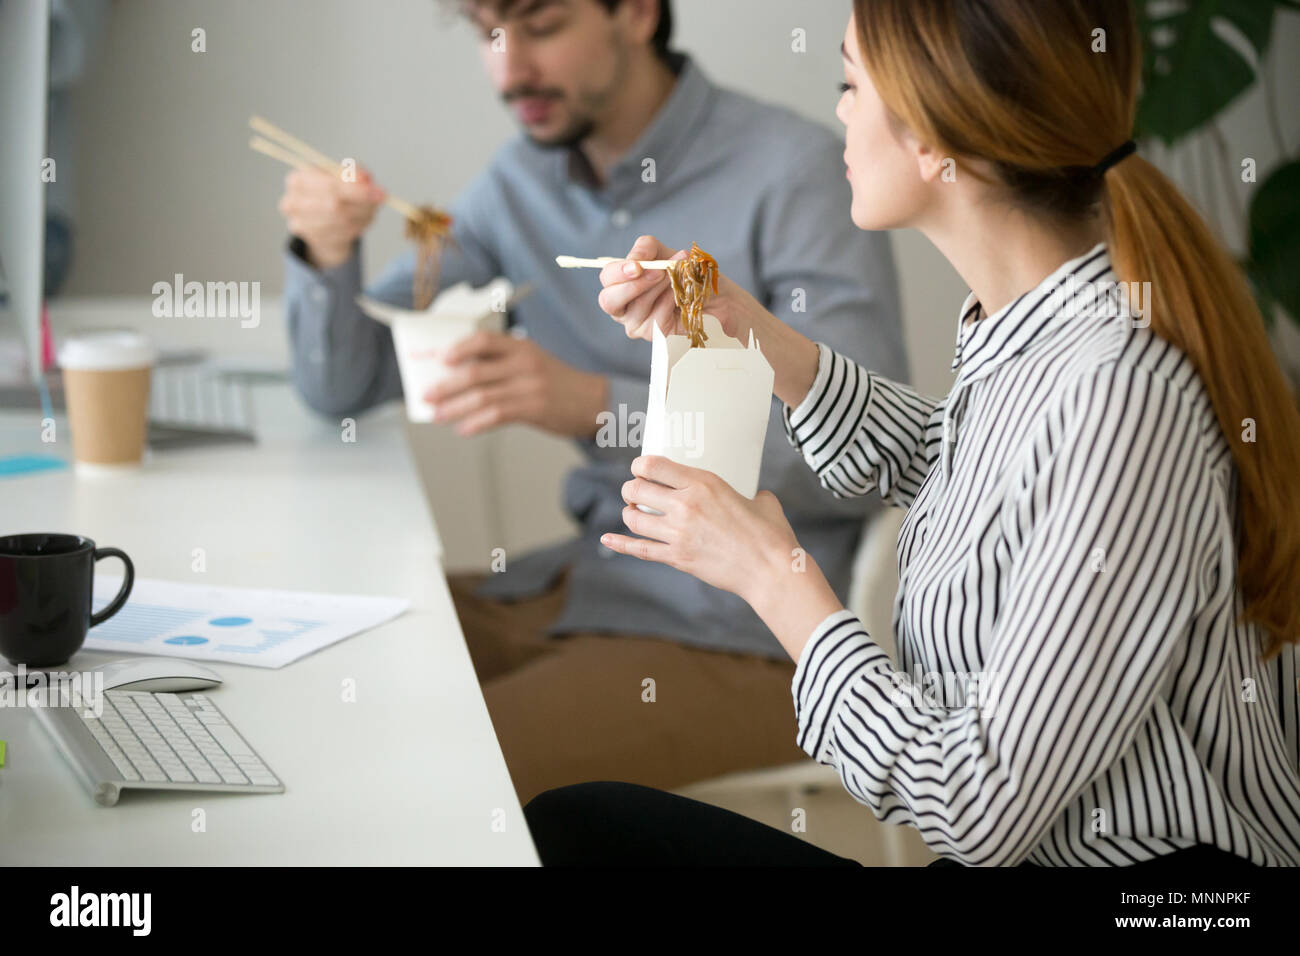 Office people eating chinese food in noodle box during lunch - Stock Image